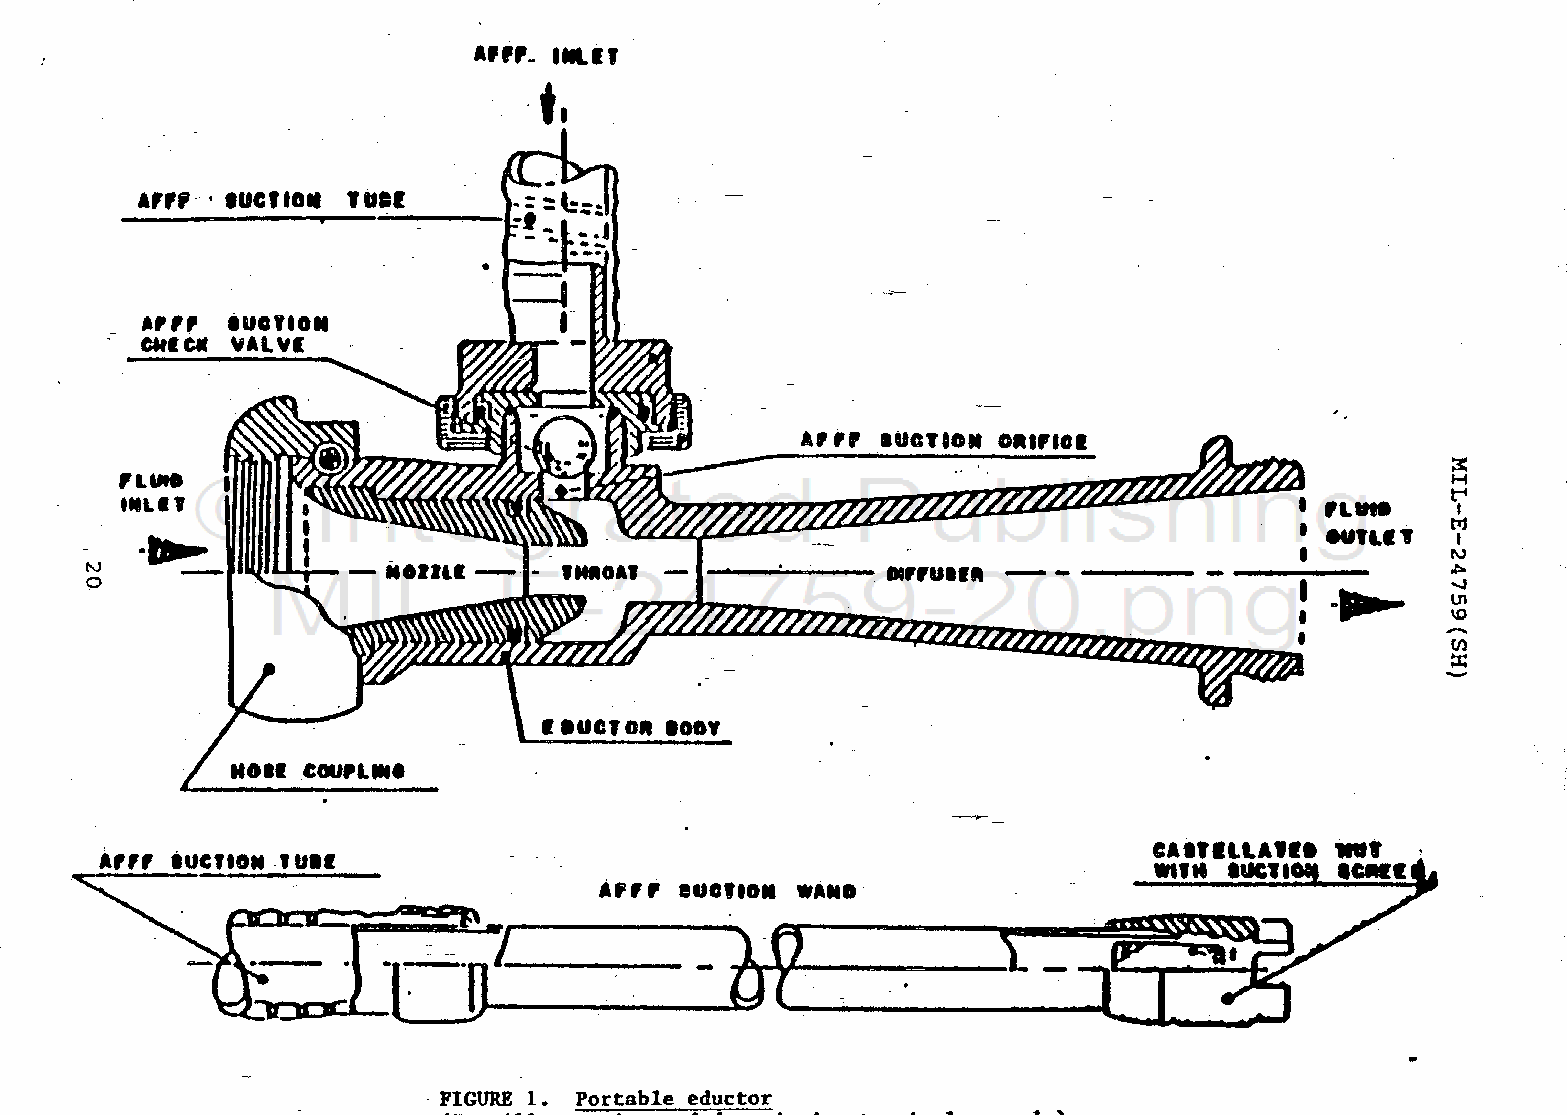 MIL-E-24759-20.png